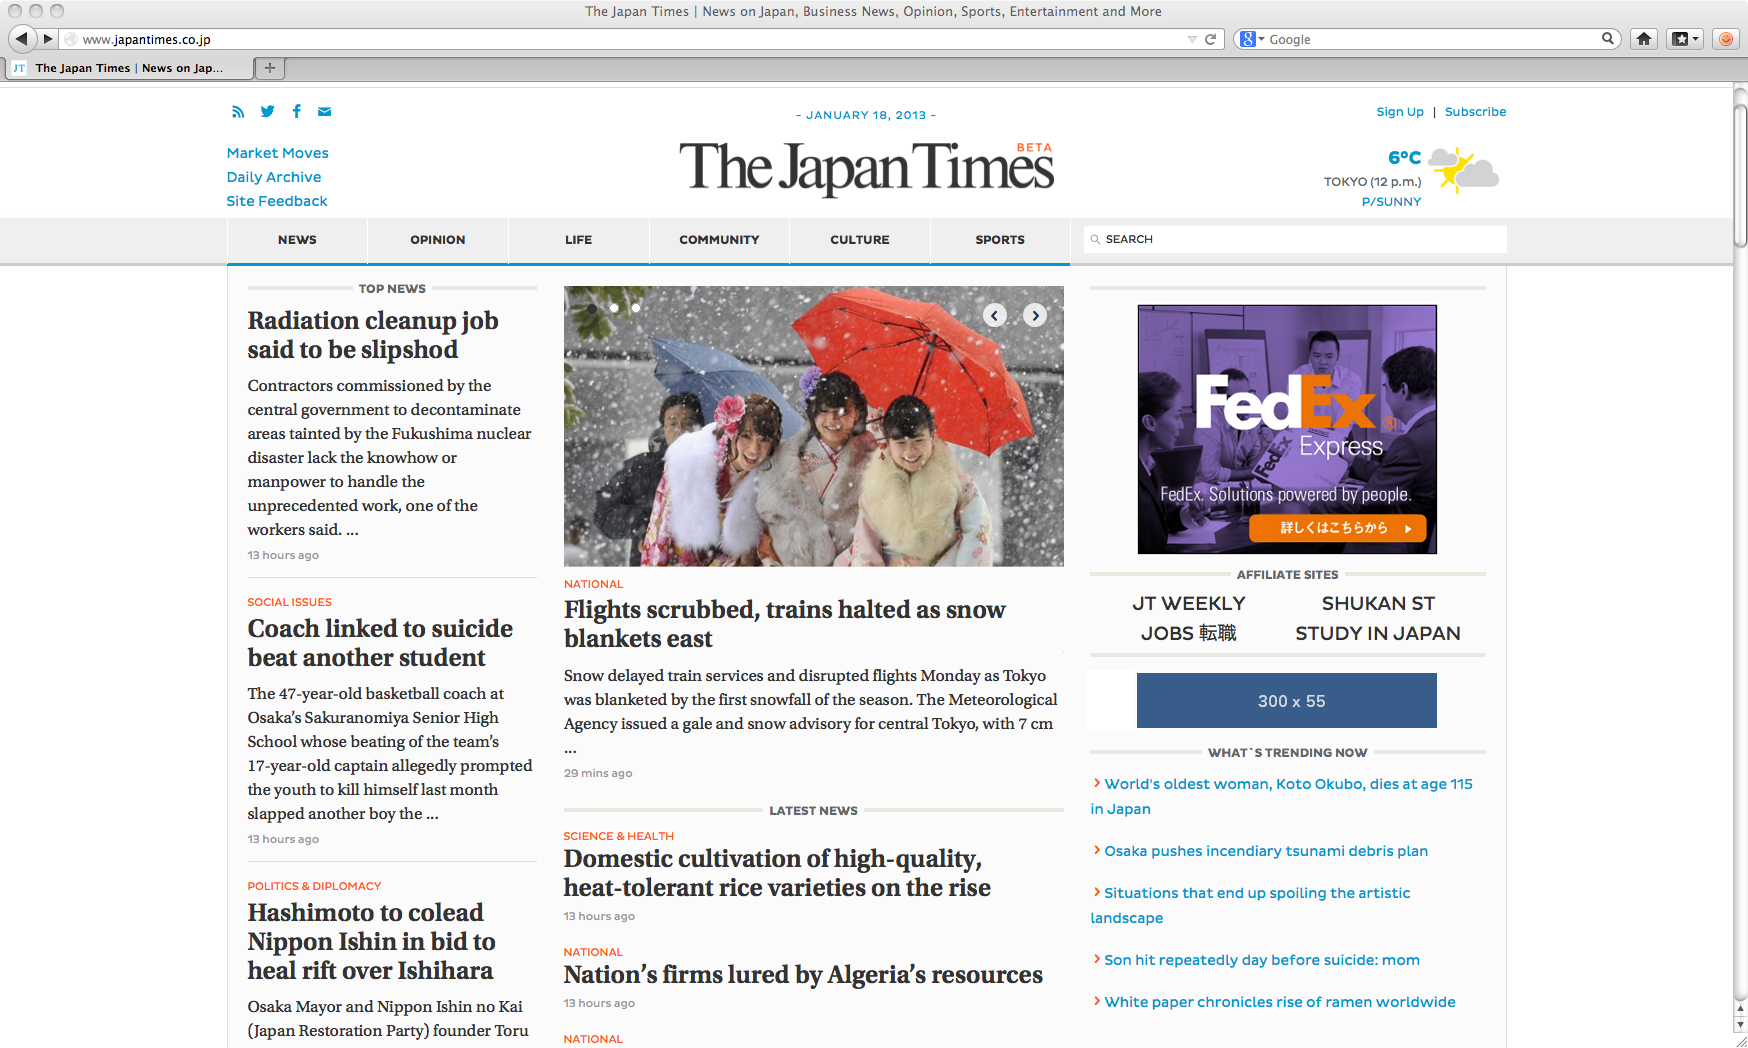 japan english news papers online Online british newspapers on the internet and international newspapers with english versions, news international news links/sites/websites.